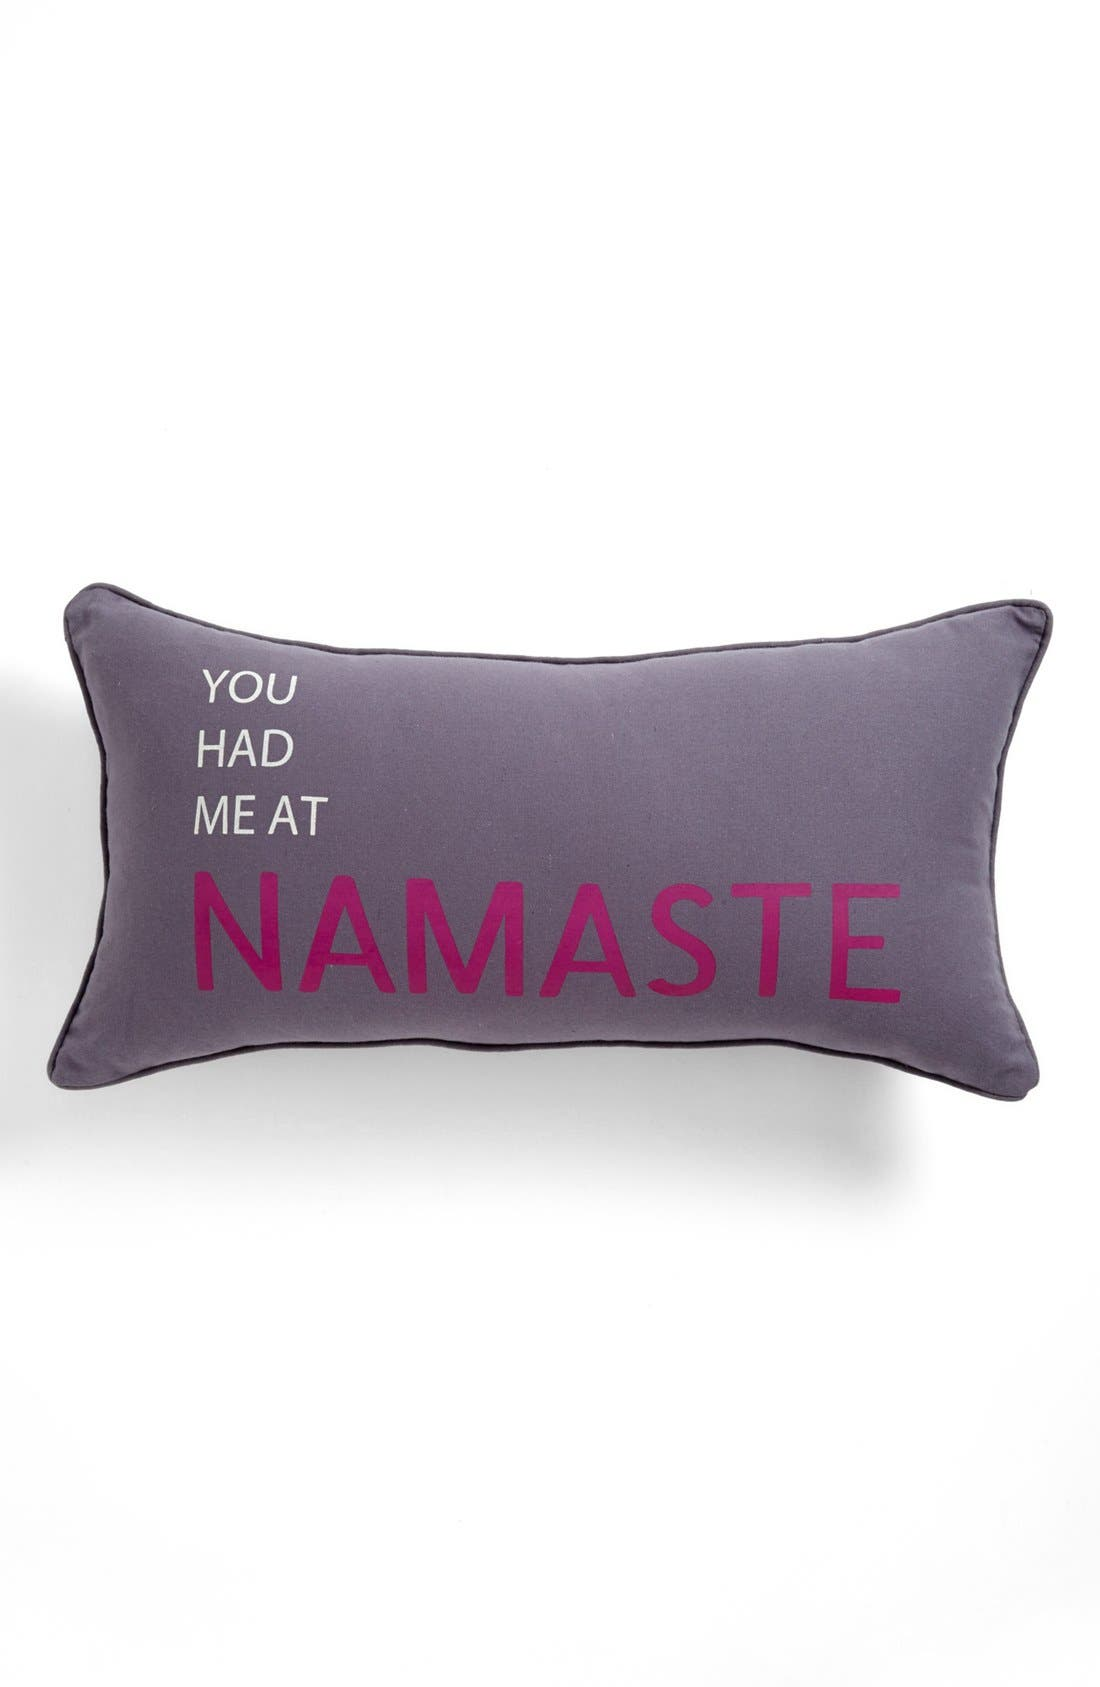 Alternate Image 1 Selected - Levtex 'You Had Me at Namaste' Pillow